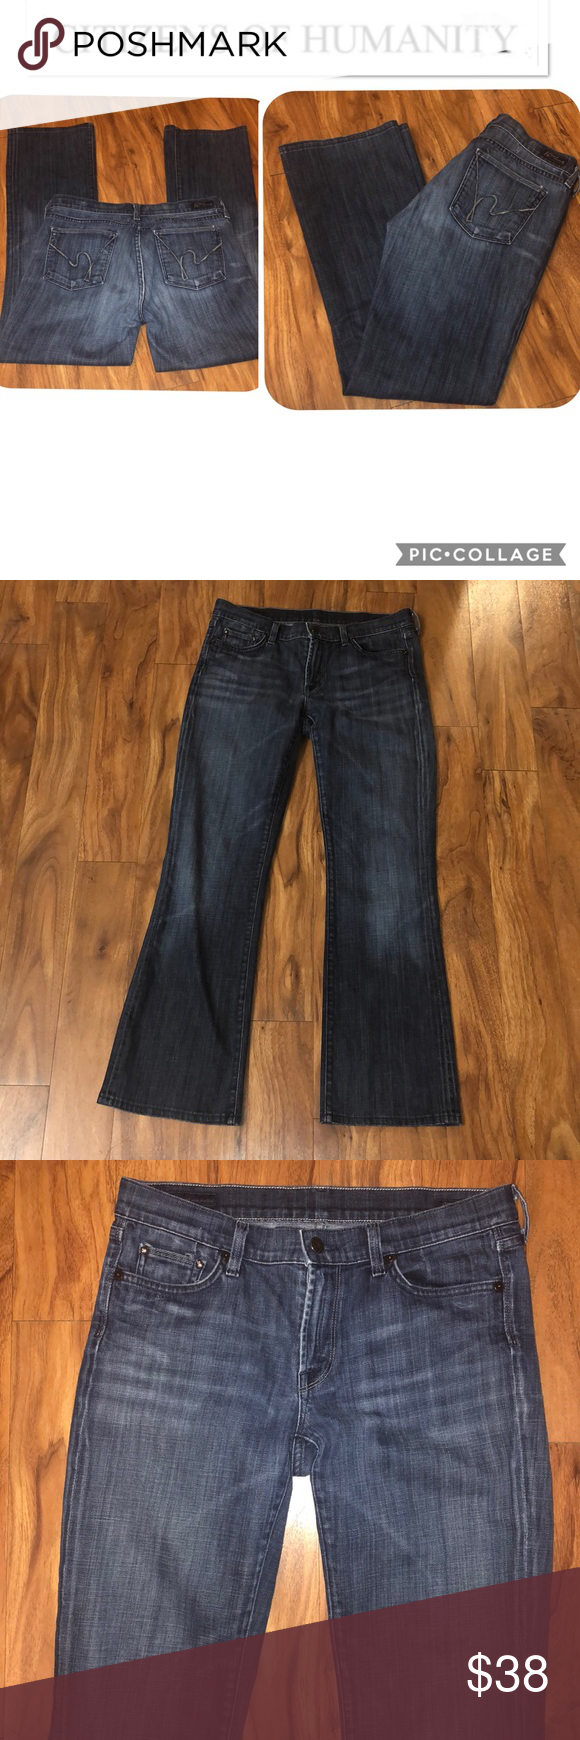 """4f35547738d COH amber stretch high rise bootcut size 29 COH, Citizens of humanity, amber  stretch high rise bootcut, size 29, inseam 30"""". Great condition!"""